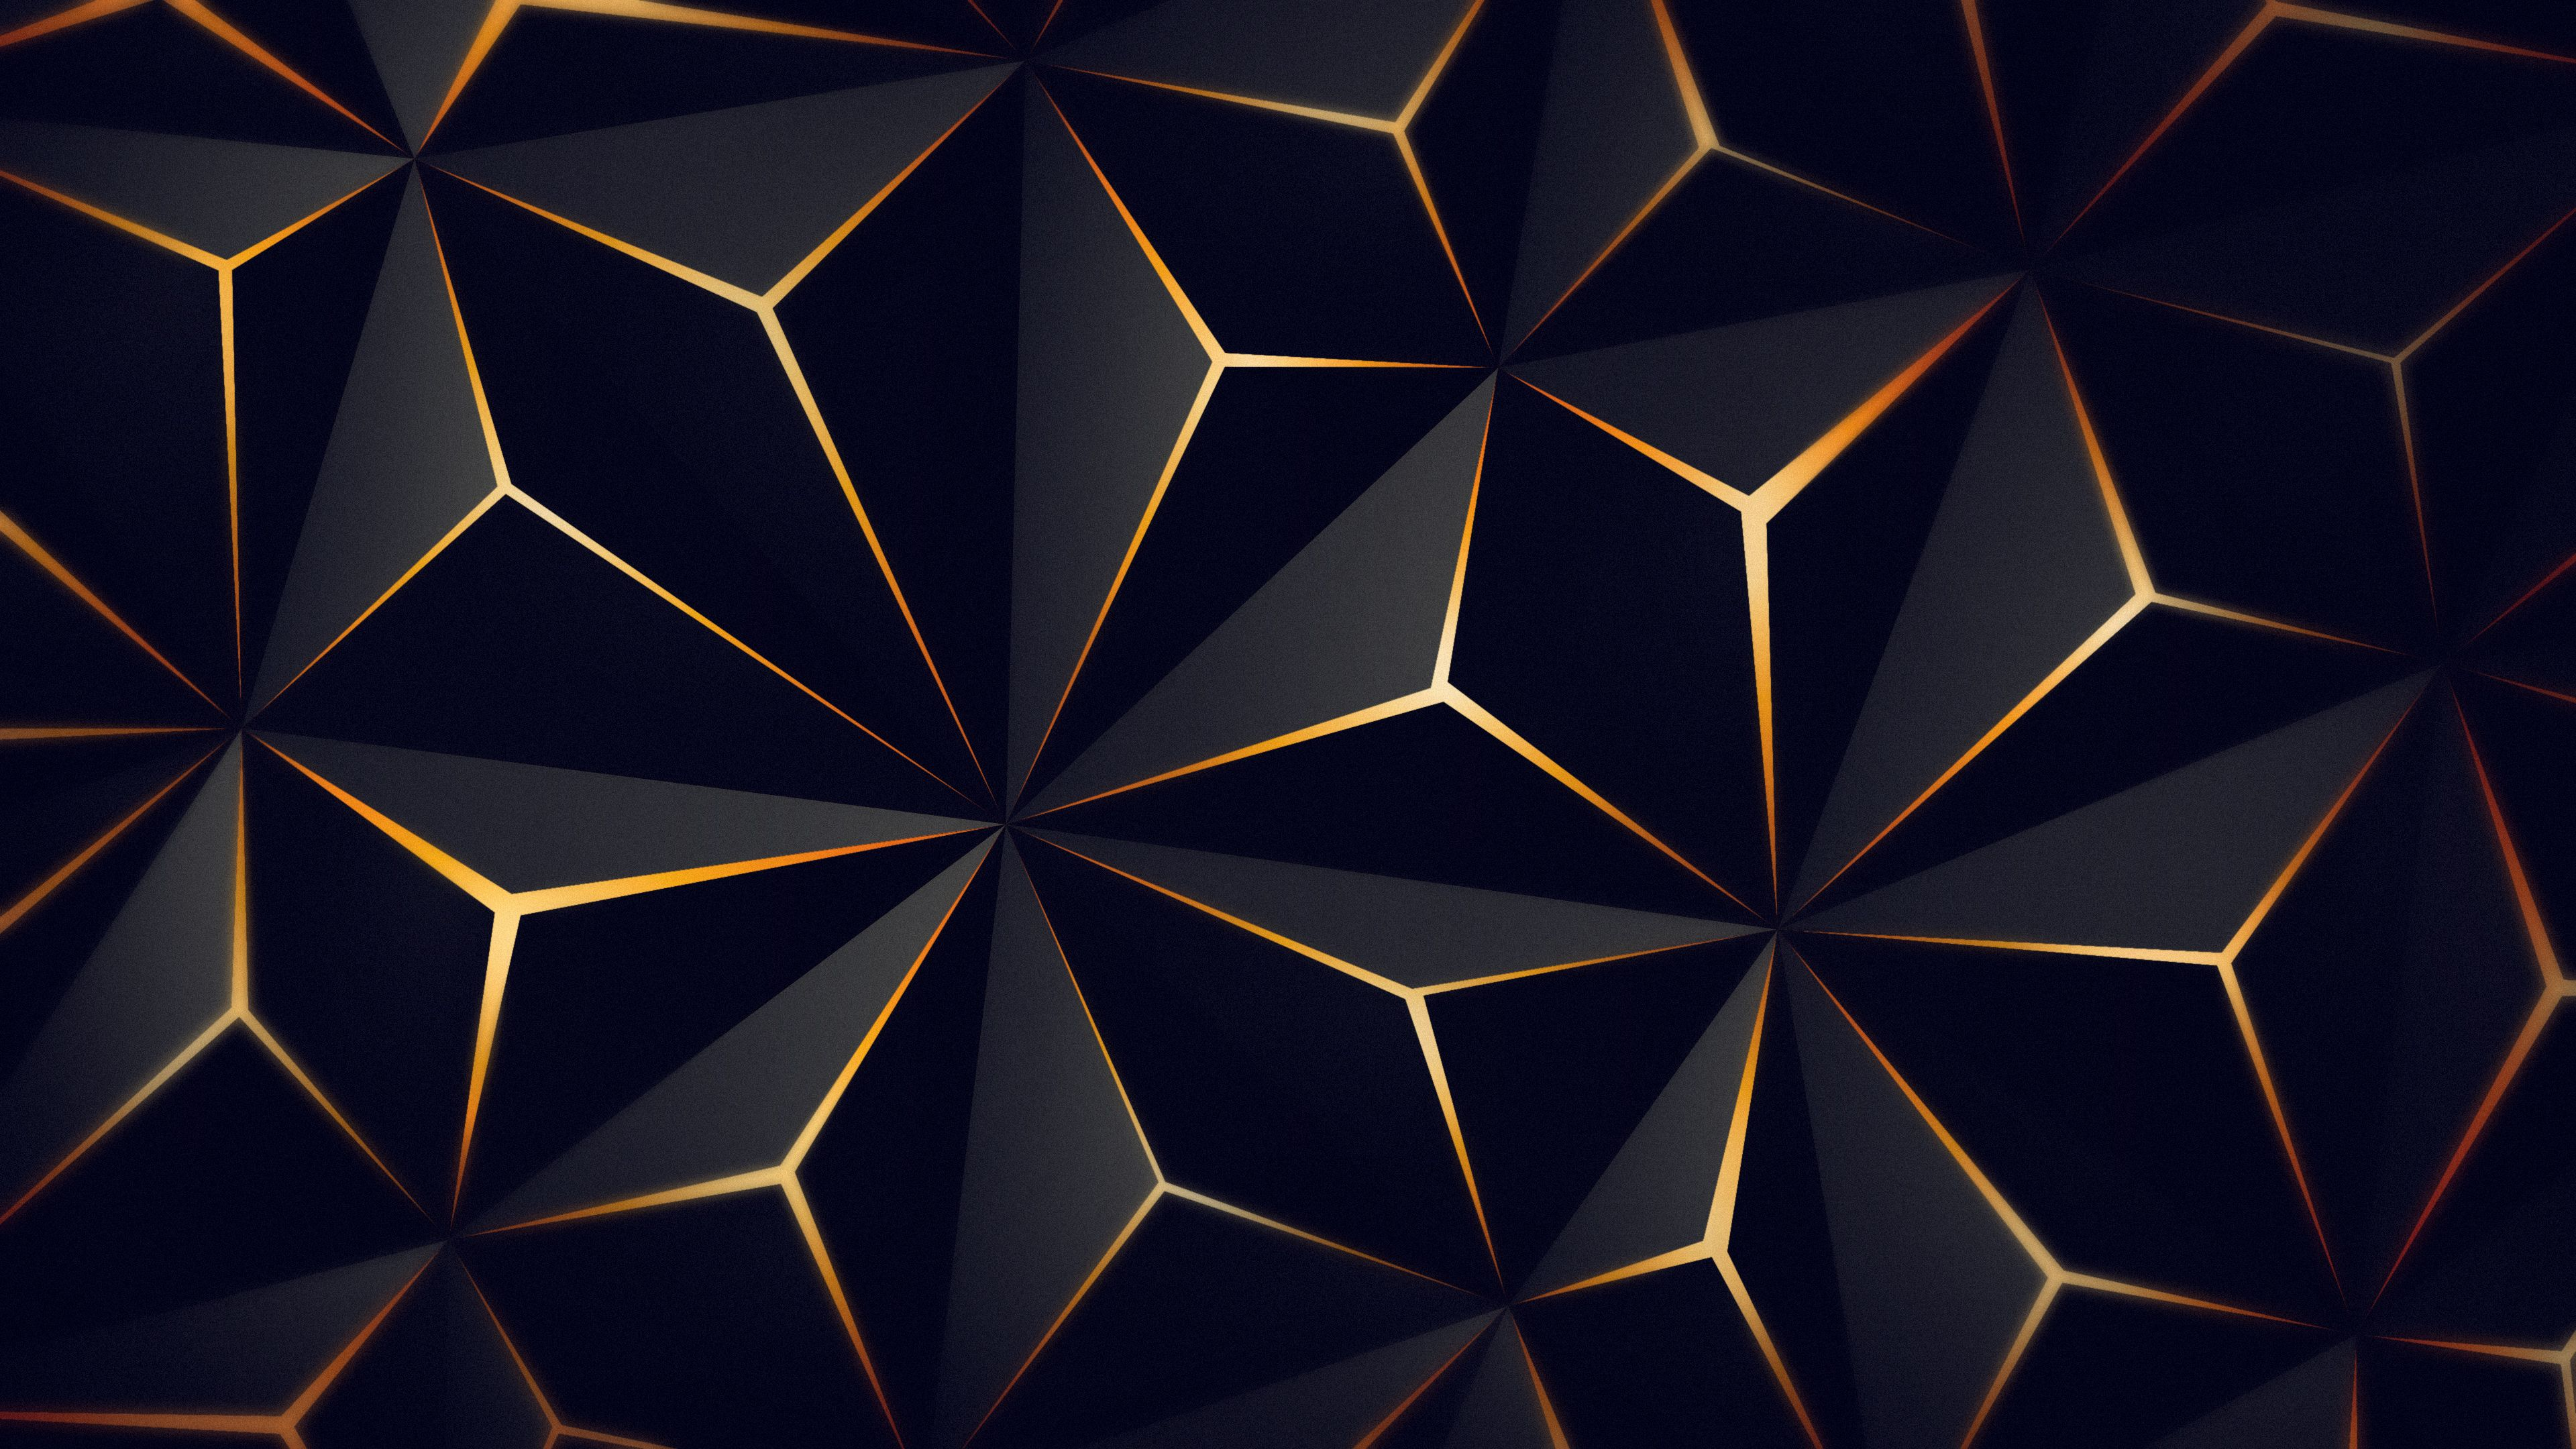 Triangle Solid Black Gold 4k Triangle Solid Black Gold 4k Wallpapers Triangle Black Gold Wallpaper